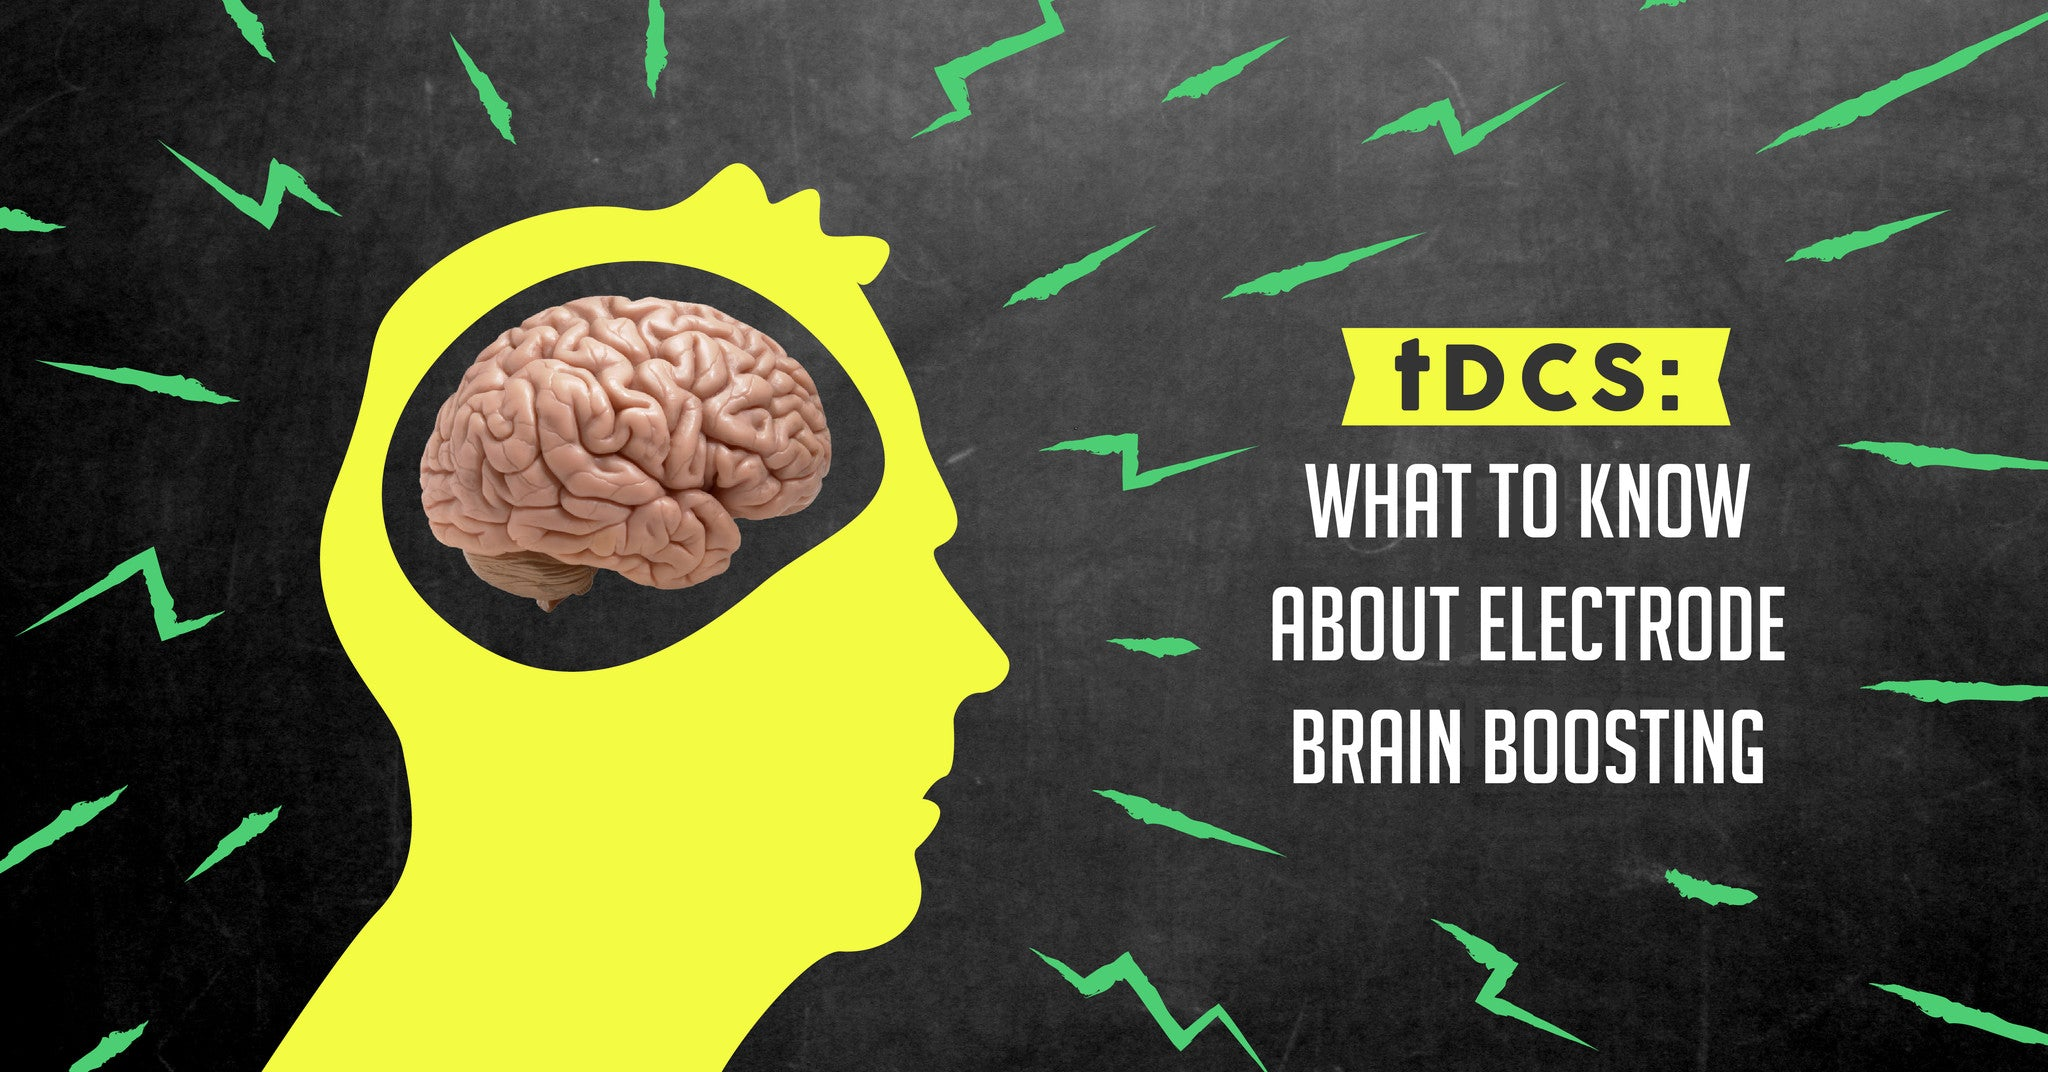 tDCS: What to Know About Electrode Brain Boosting